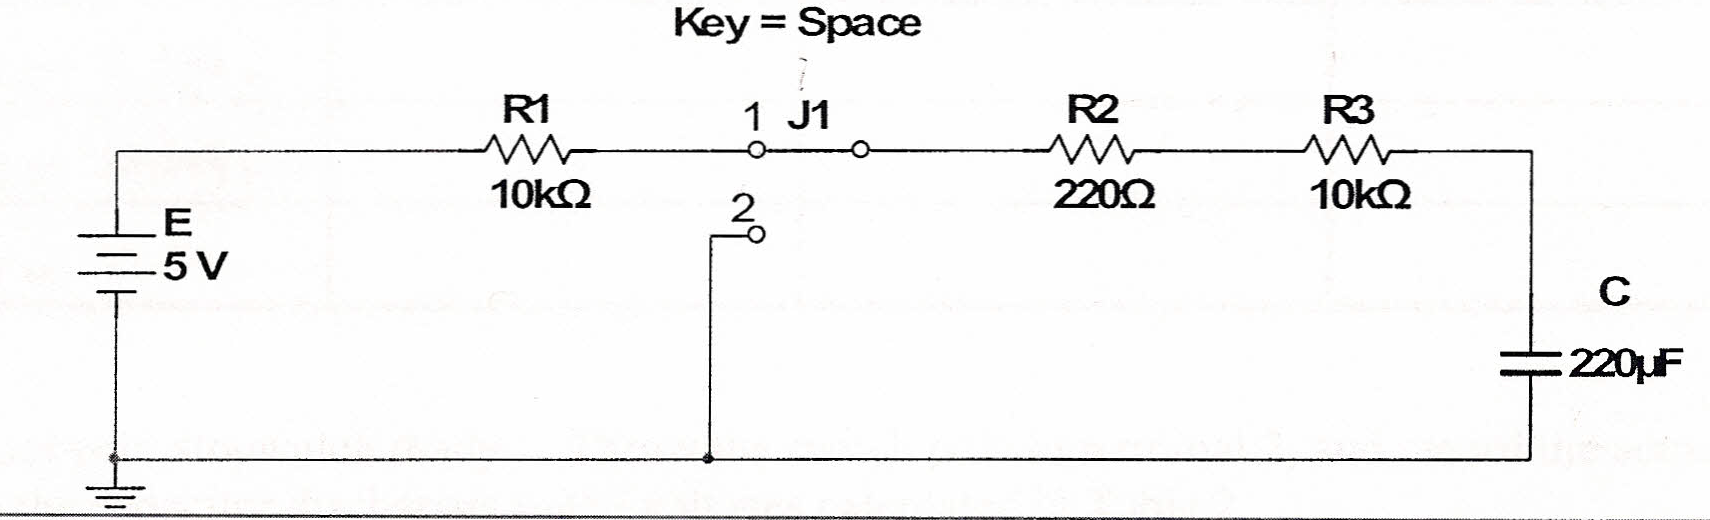 The following circuit was given and two tasks were